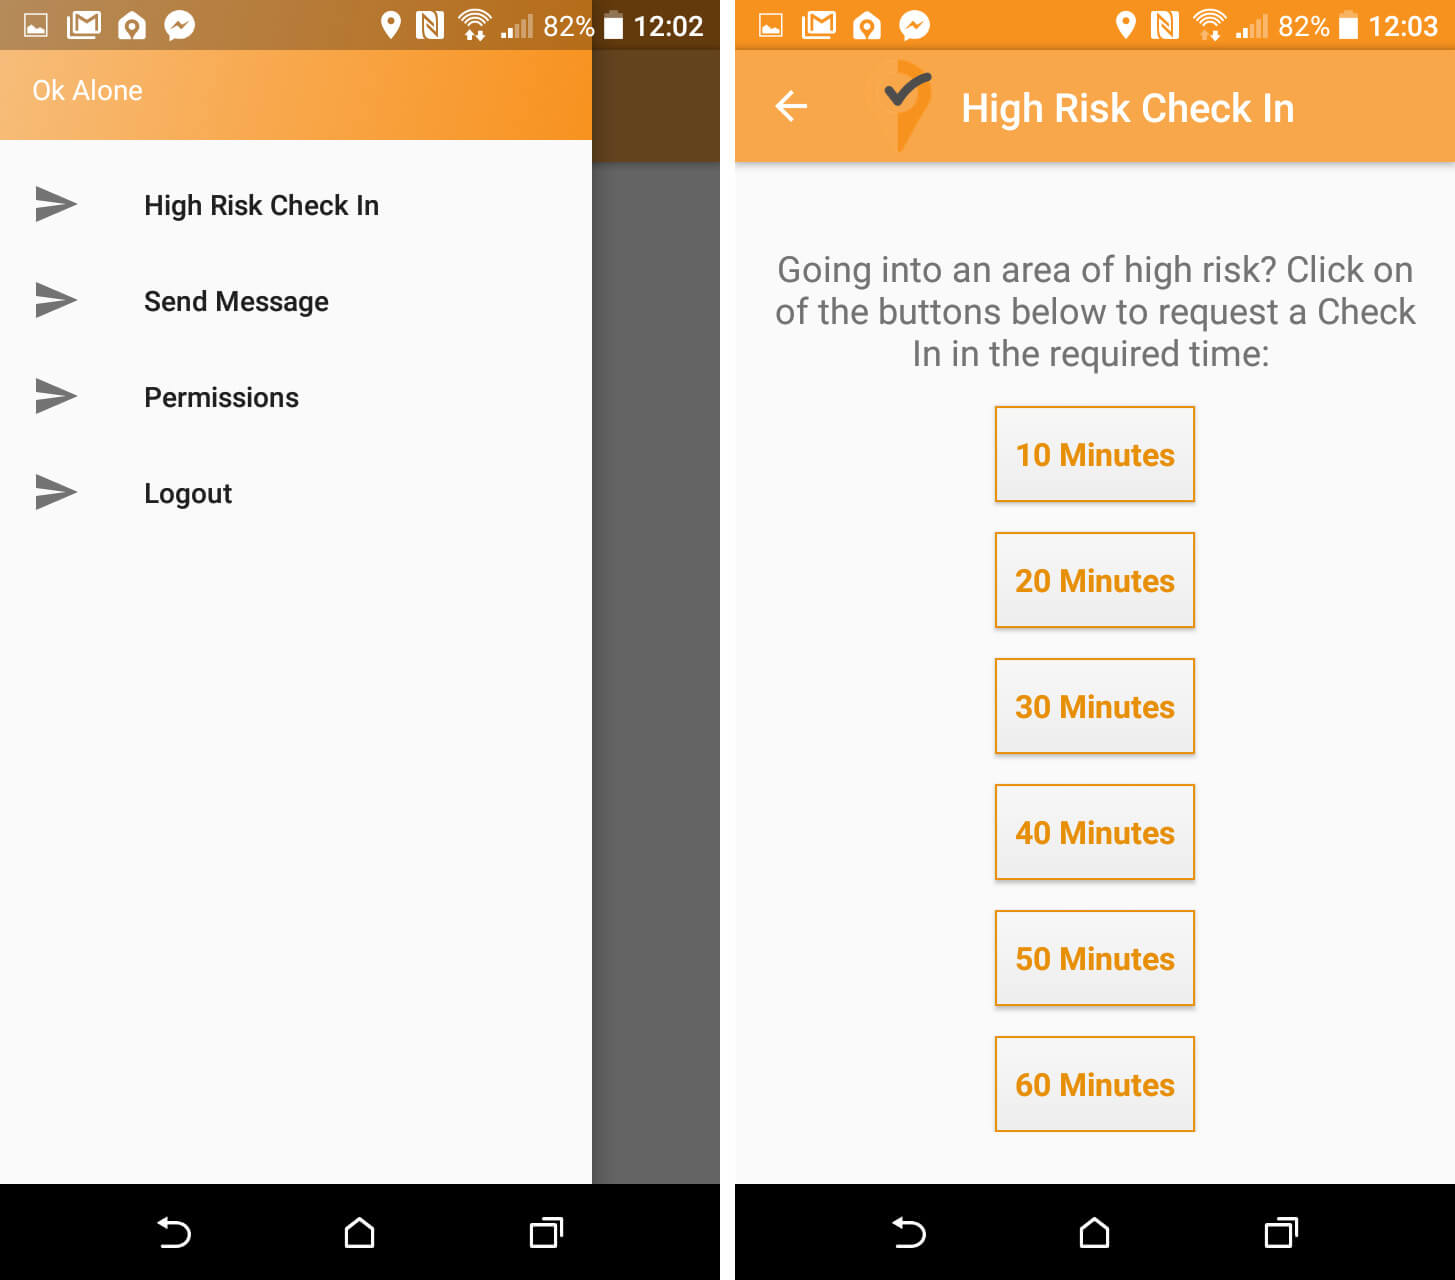 High Risk Check-in from OK Alone lone worker monitoring